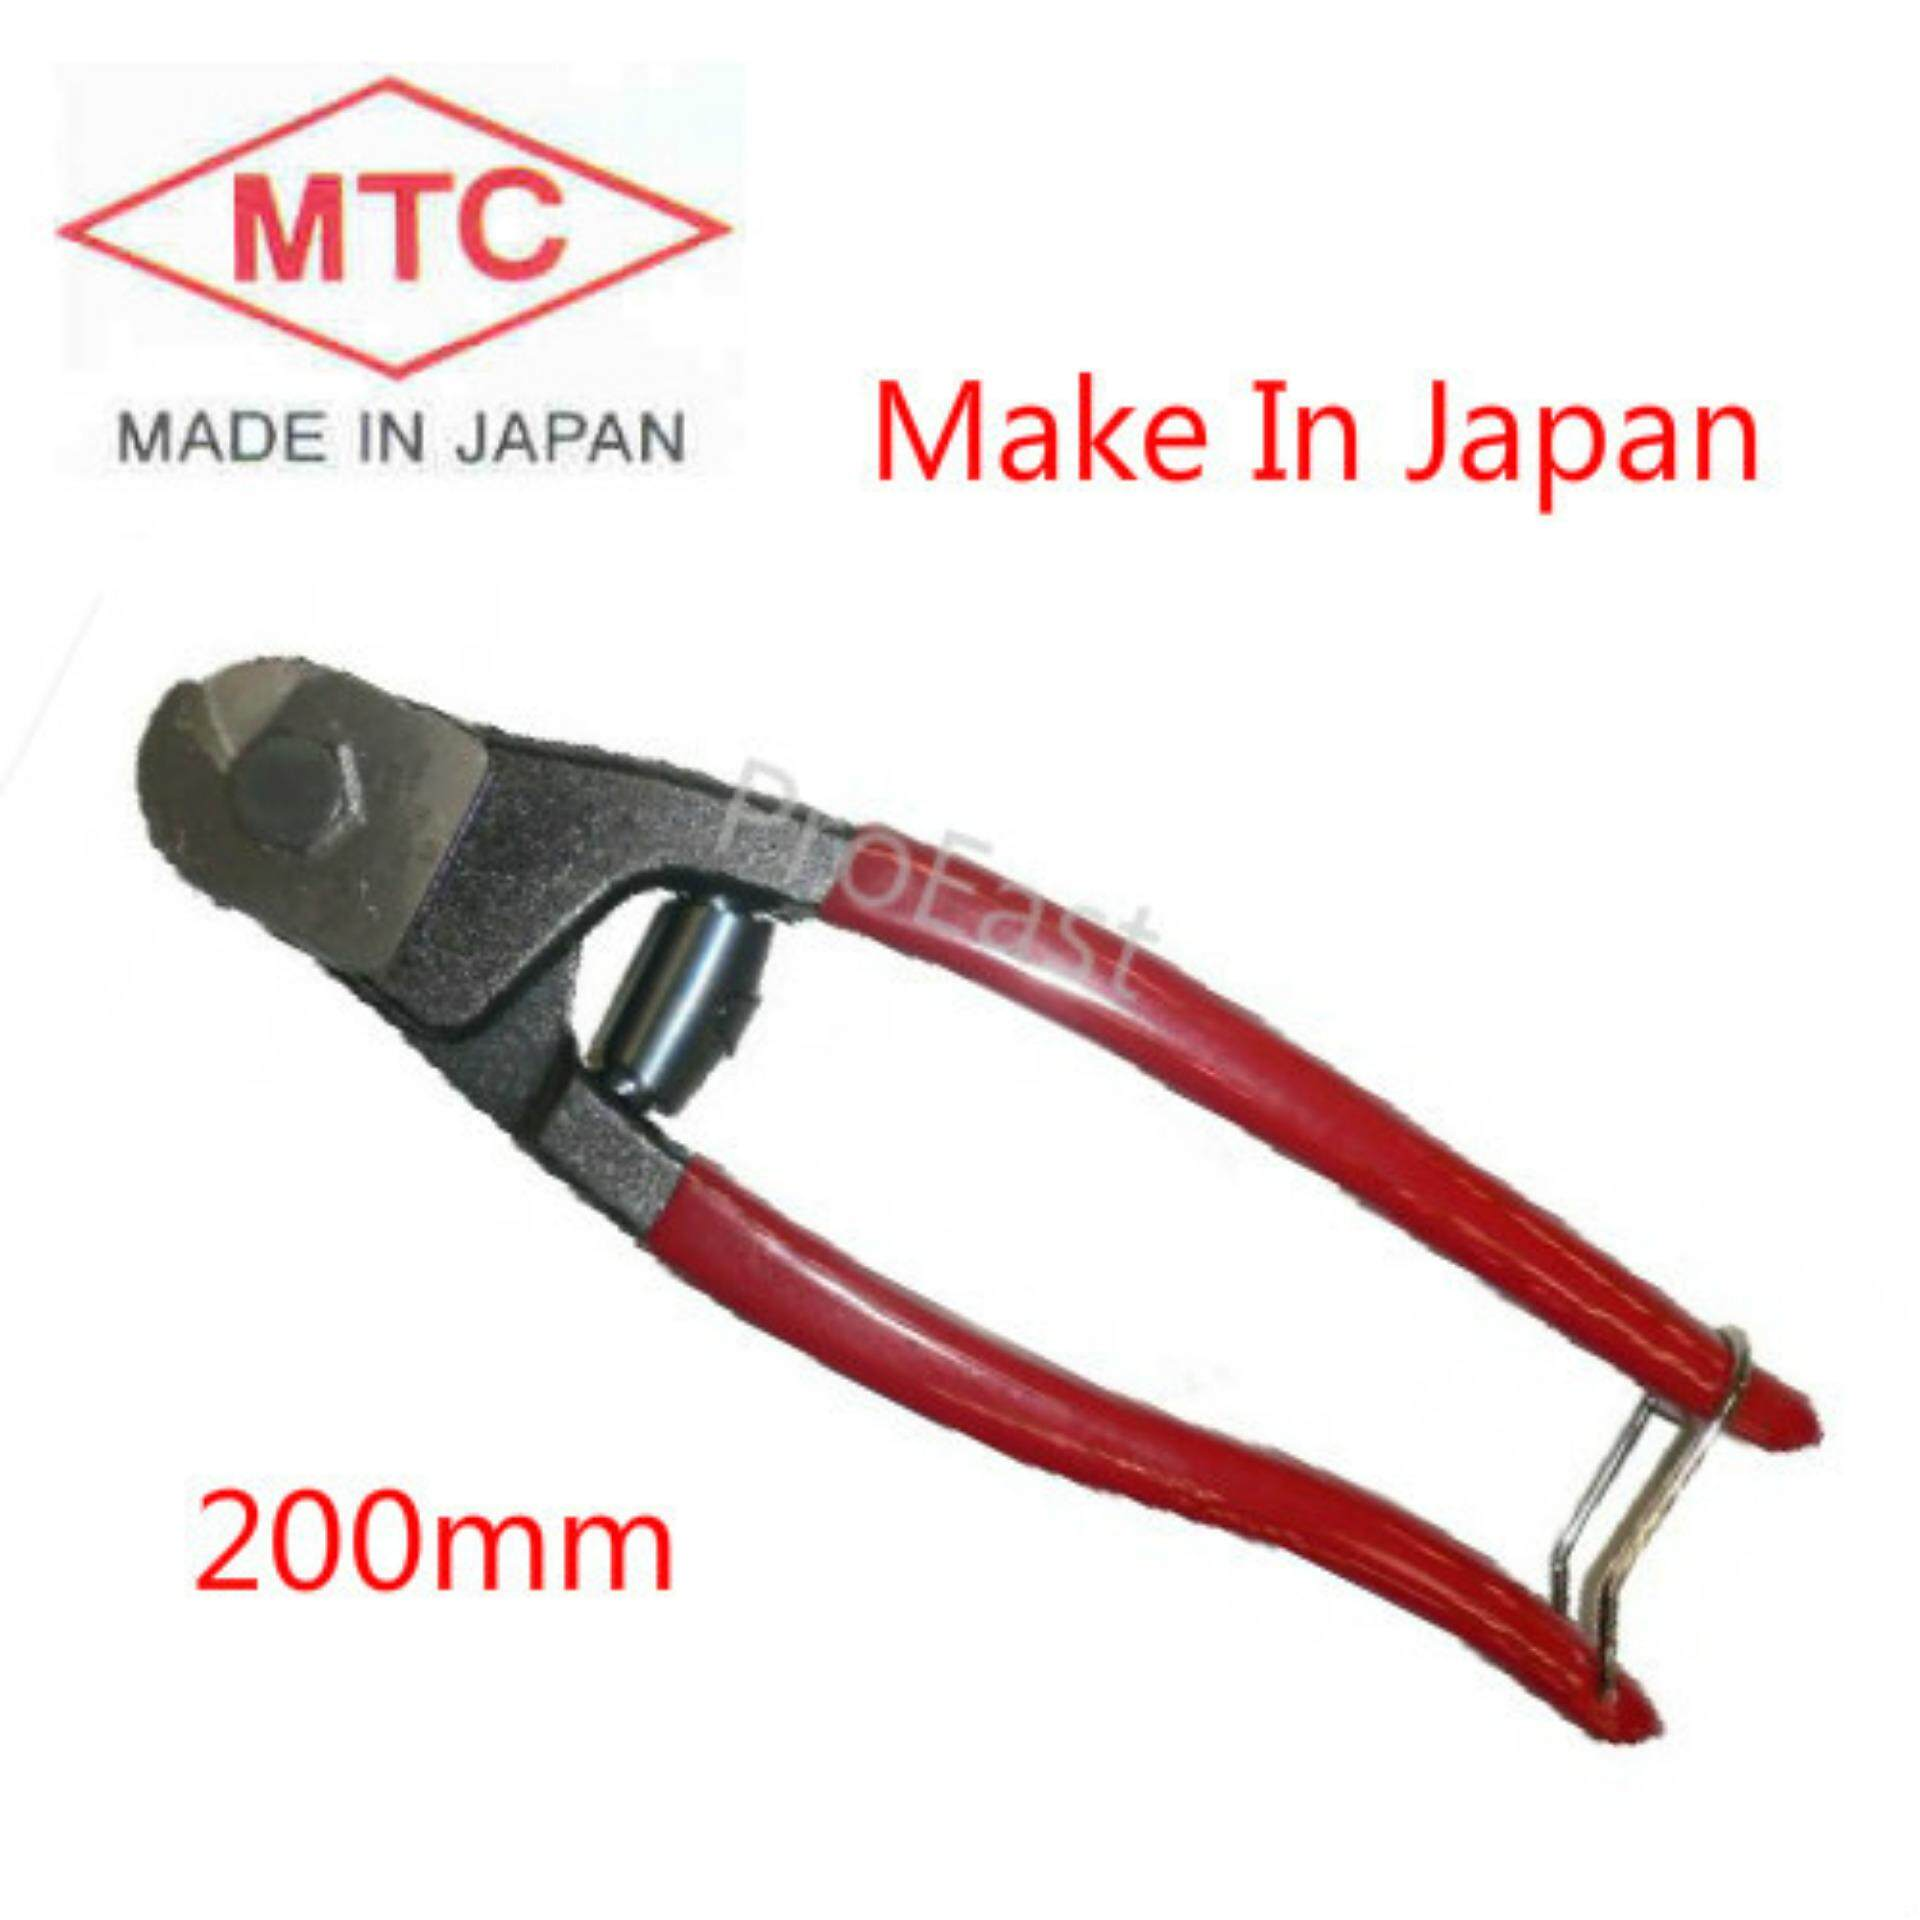 Buy MTC Tools MTC-70 8 WIRE ROPE CUTTER CABLE CUTTER (200mm) Malaysia